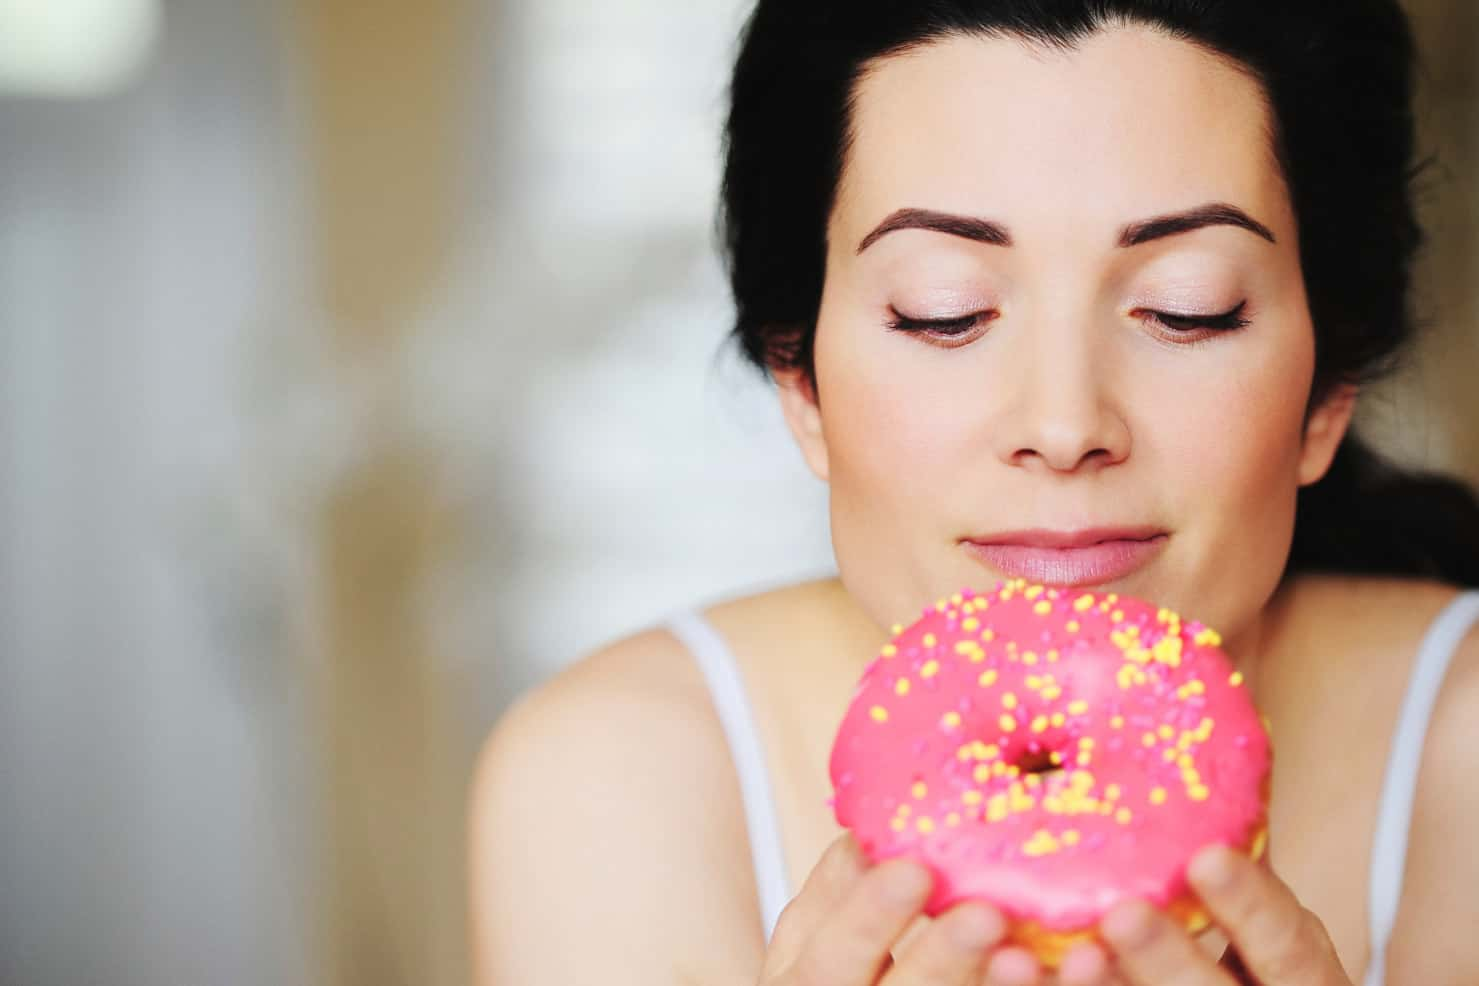 Pink-donut-low-Res-Image